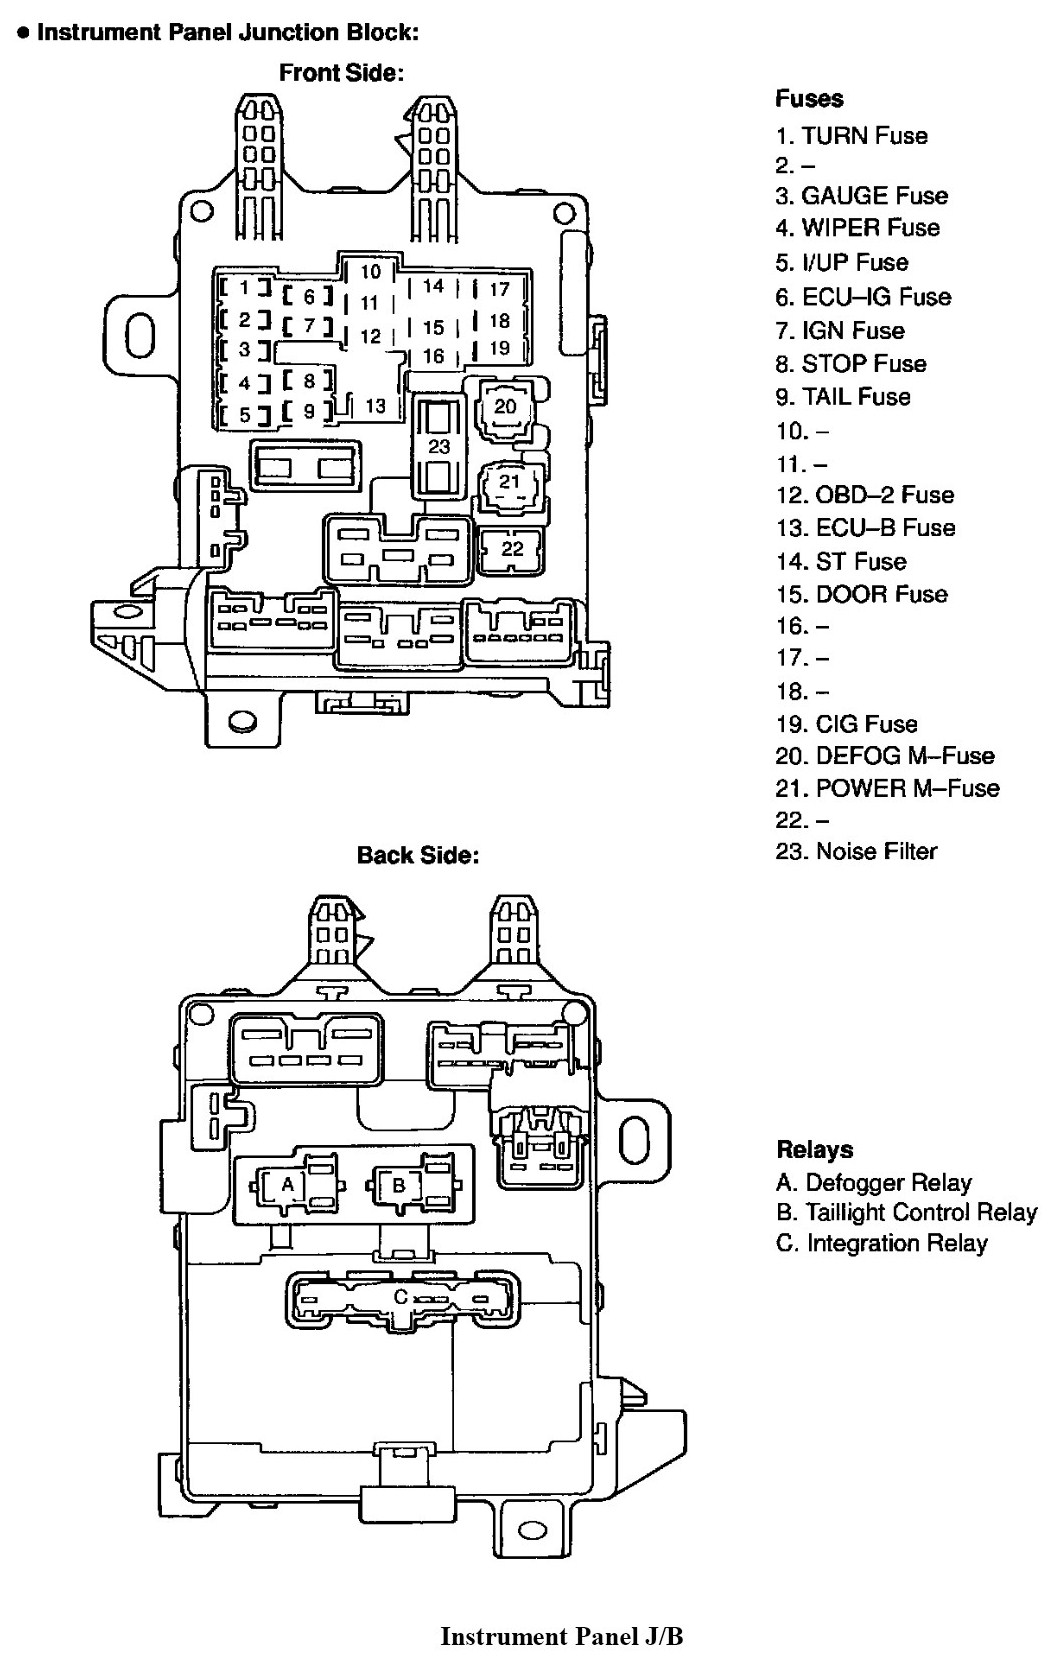 hight resolution of 2001 toyota corolla fuse box diagram wiring diagram third level 07 corolla fuse box 2001 toyota corolla fuse box location